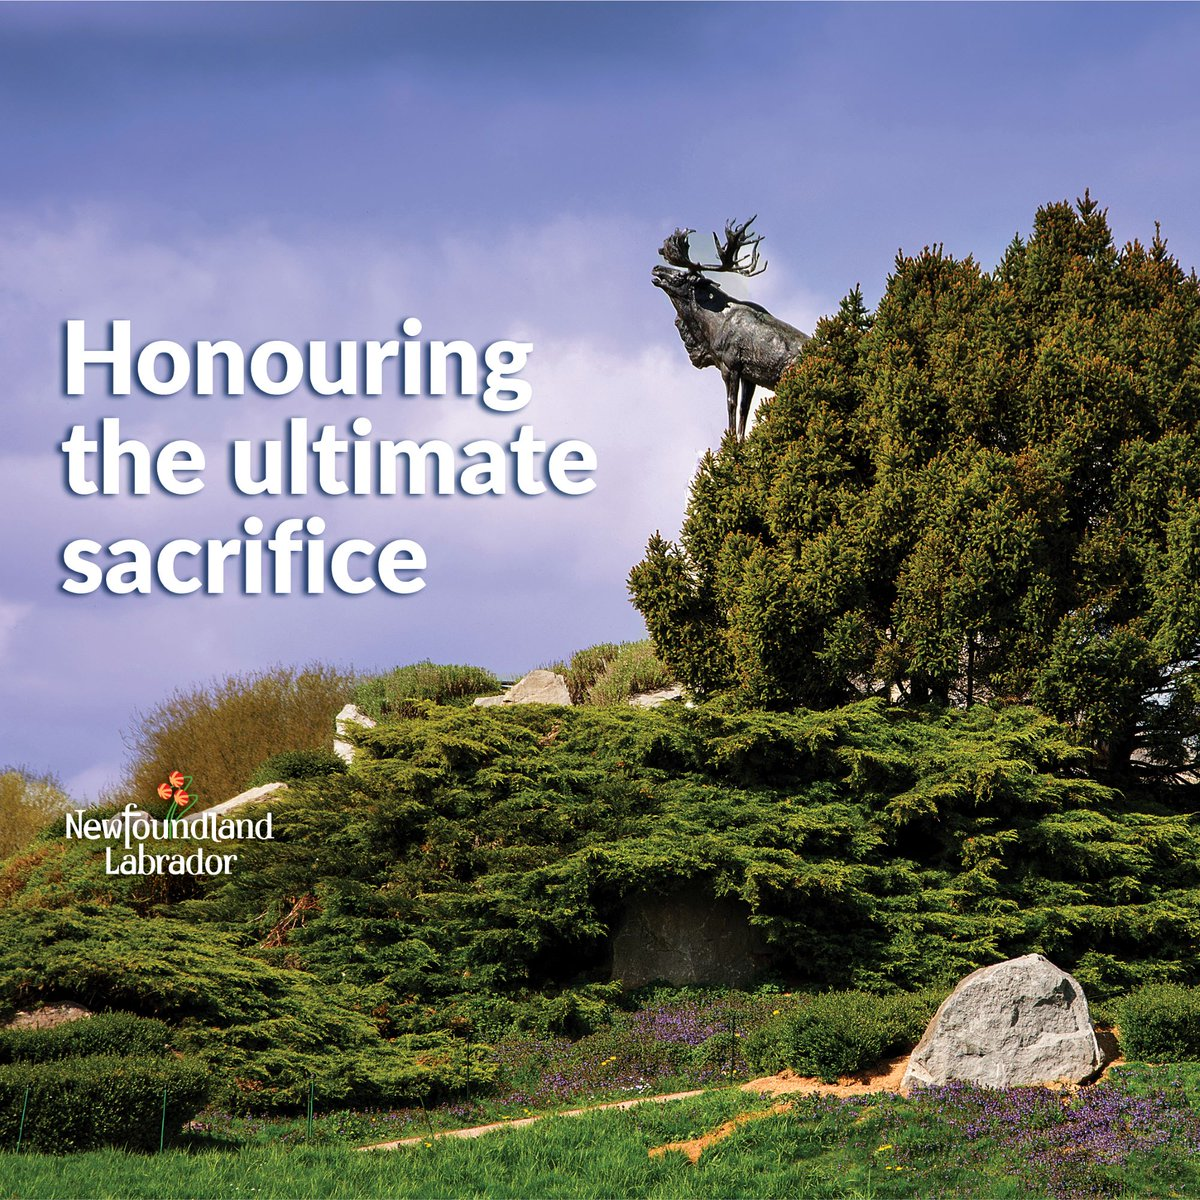 Today is #MemorialDay in our province. It is a significant day as we pay tribute to the brave Newfoundlanders who made the ultimate sacrifice at #BeaumontHamel in 1916. Learn more:    Flags are at half-mast from sunrise until noon. #LestWeForget #GovNL